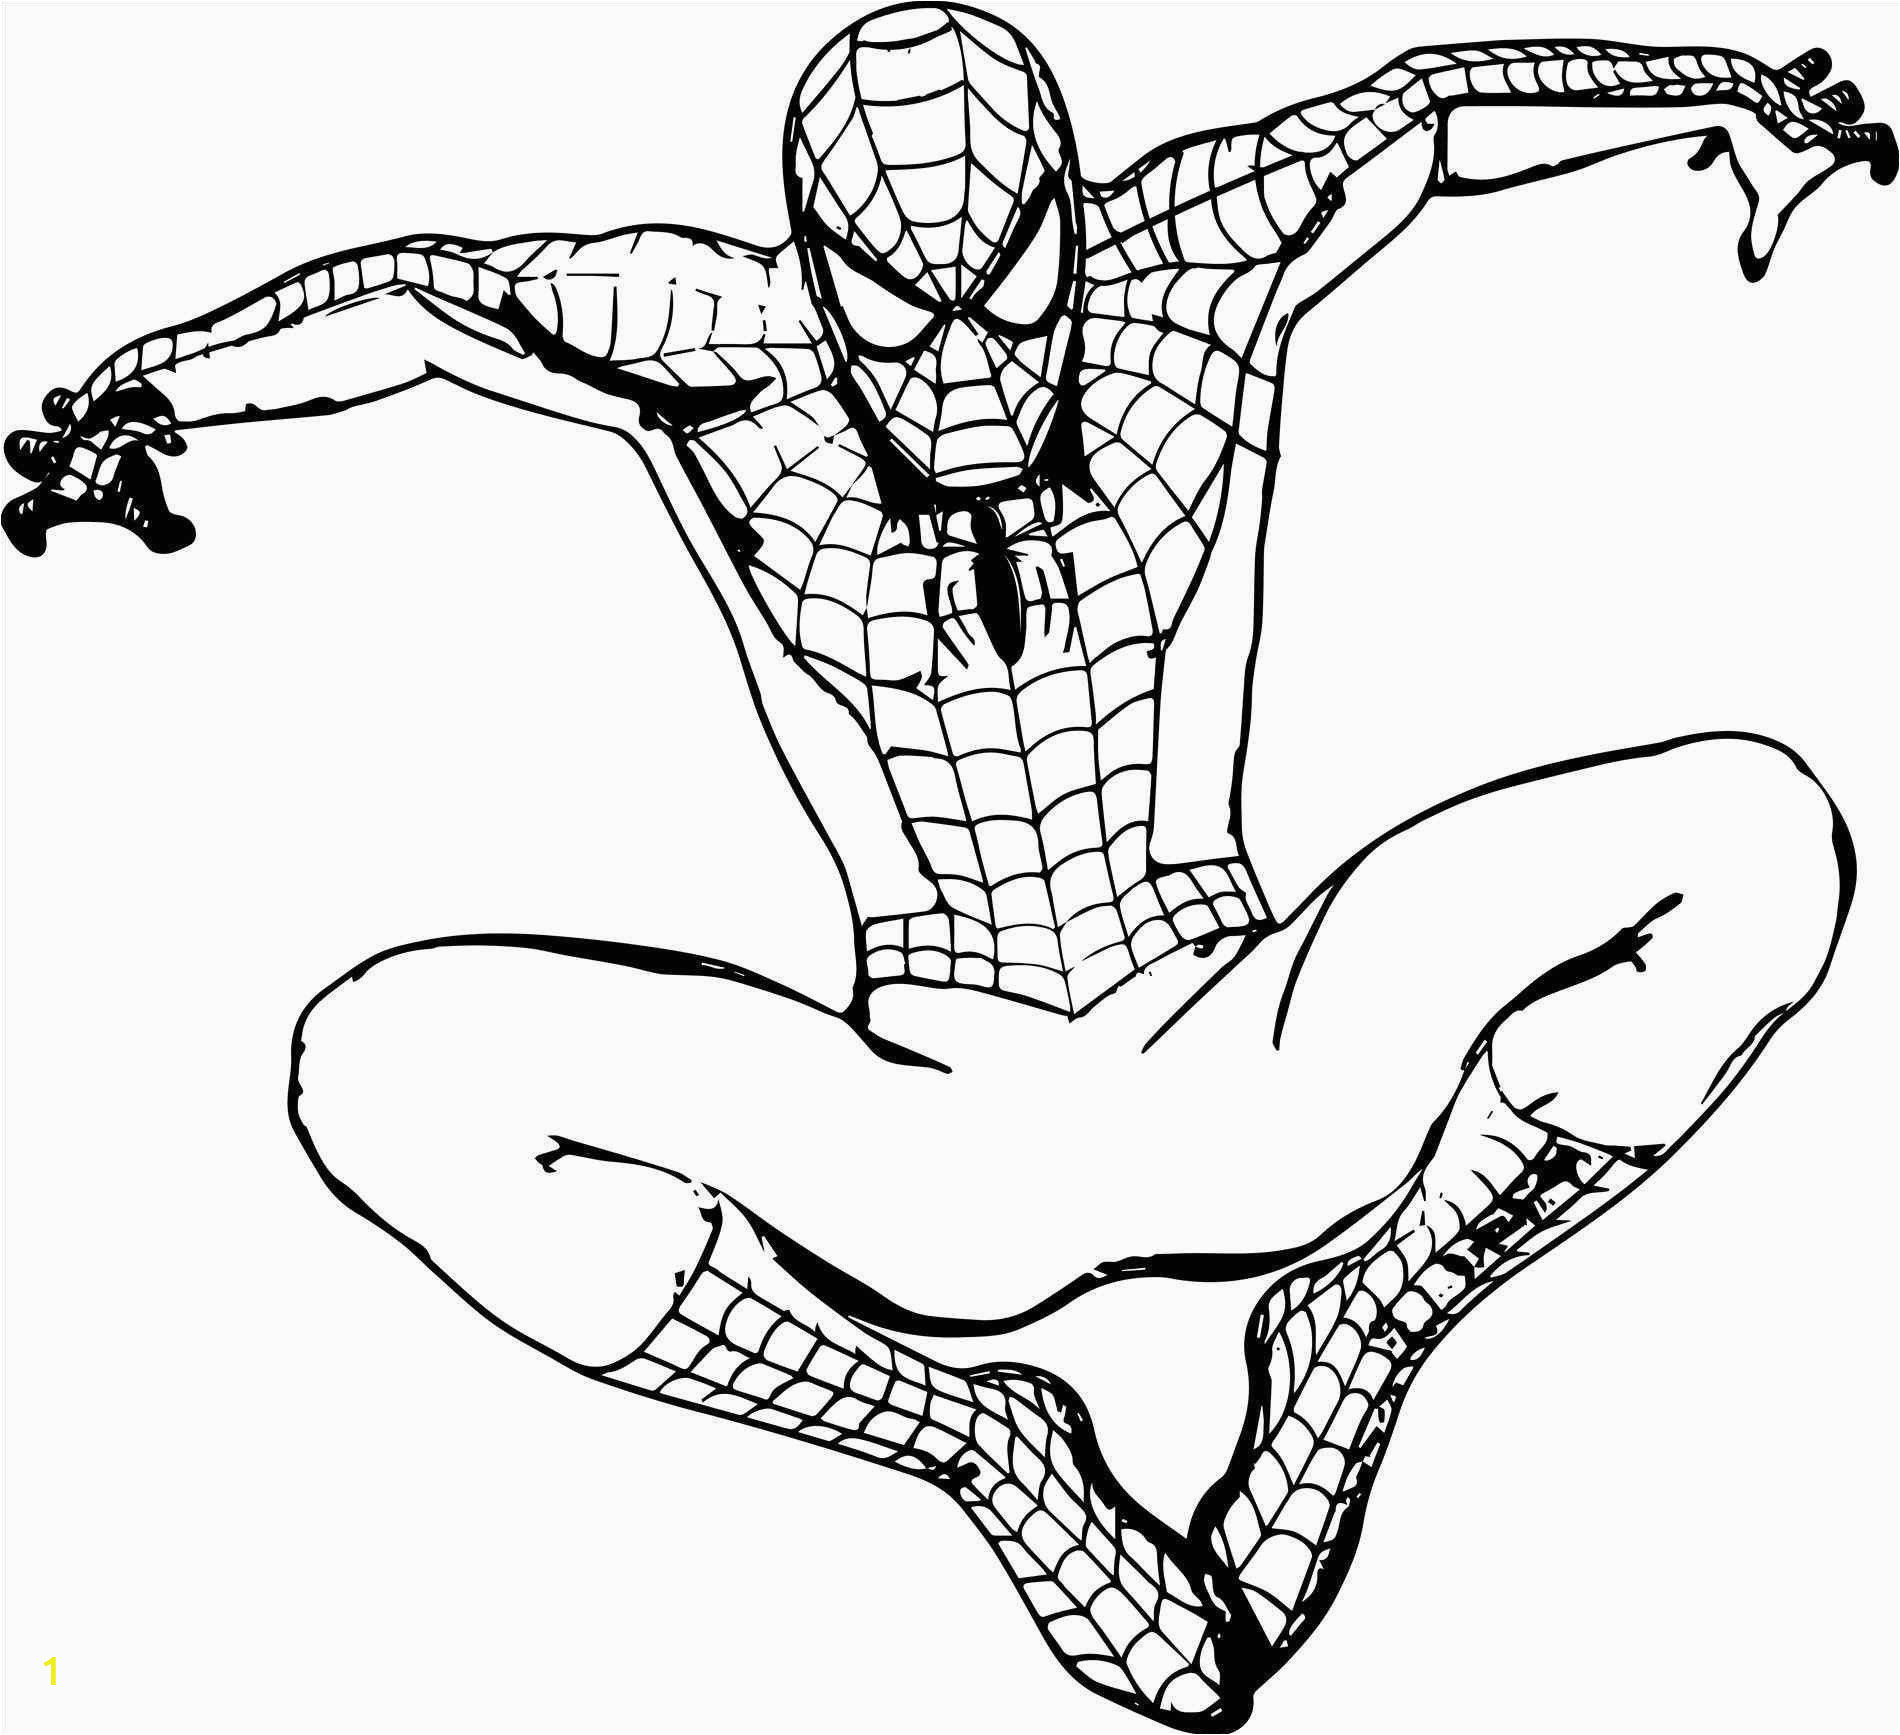 free printable disney coloring pages inspirational black spiderman coloring pages rush essay of free printable disney coloring pages